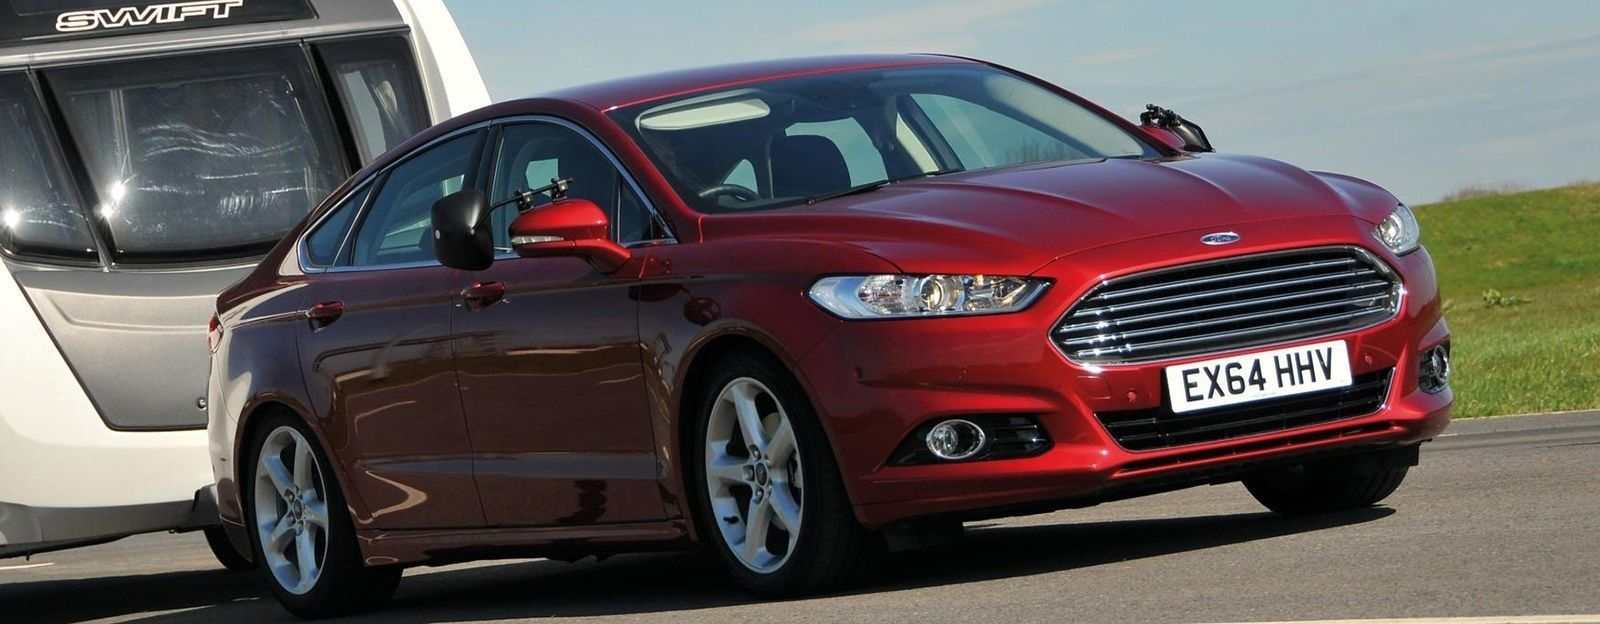 59 All New 2020 Ford Mondeo Vignale Spesification